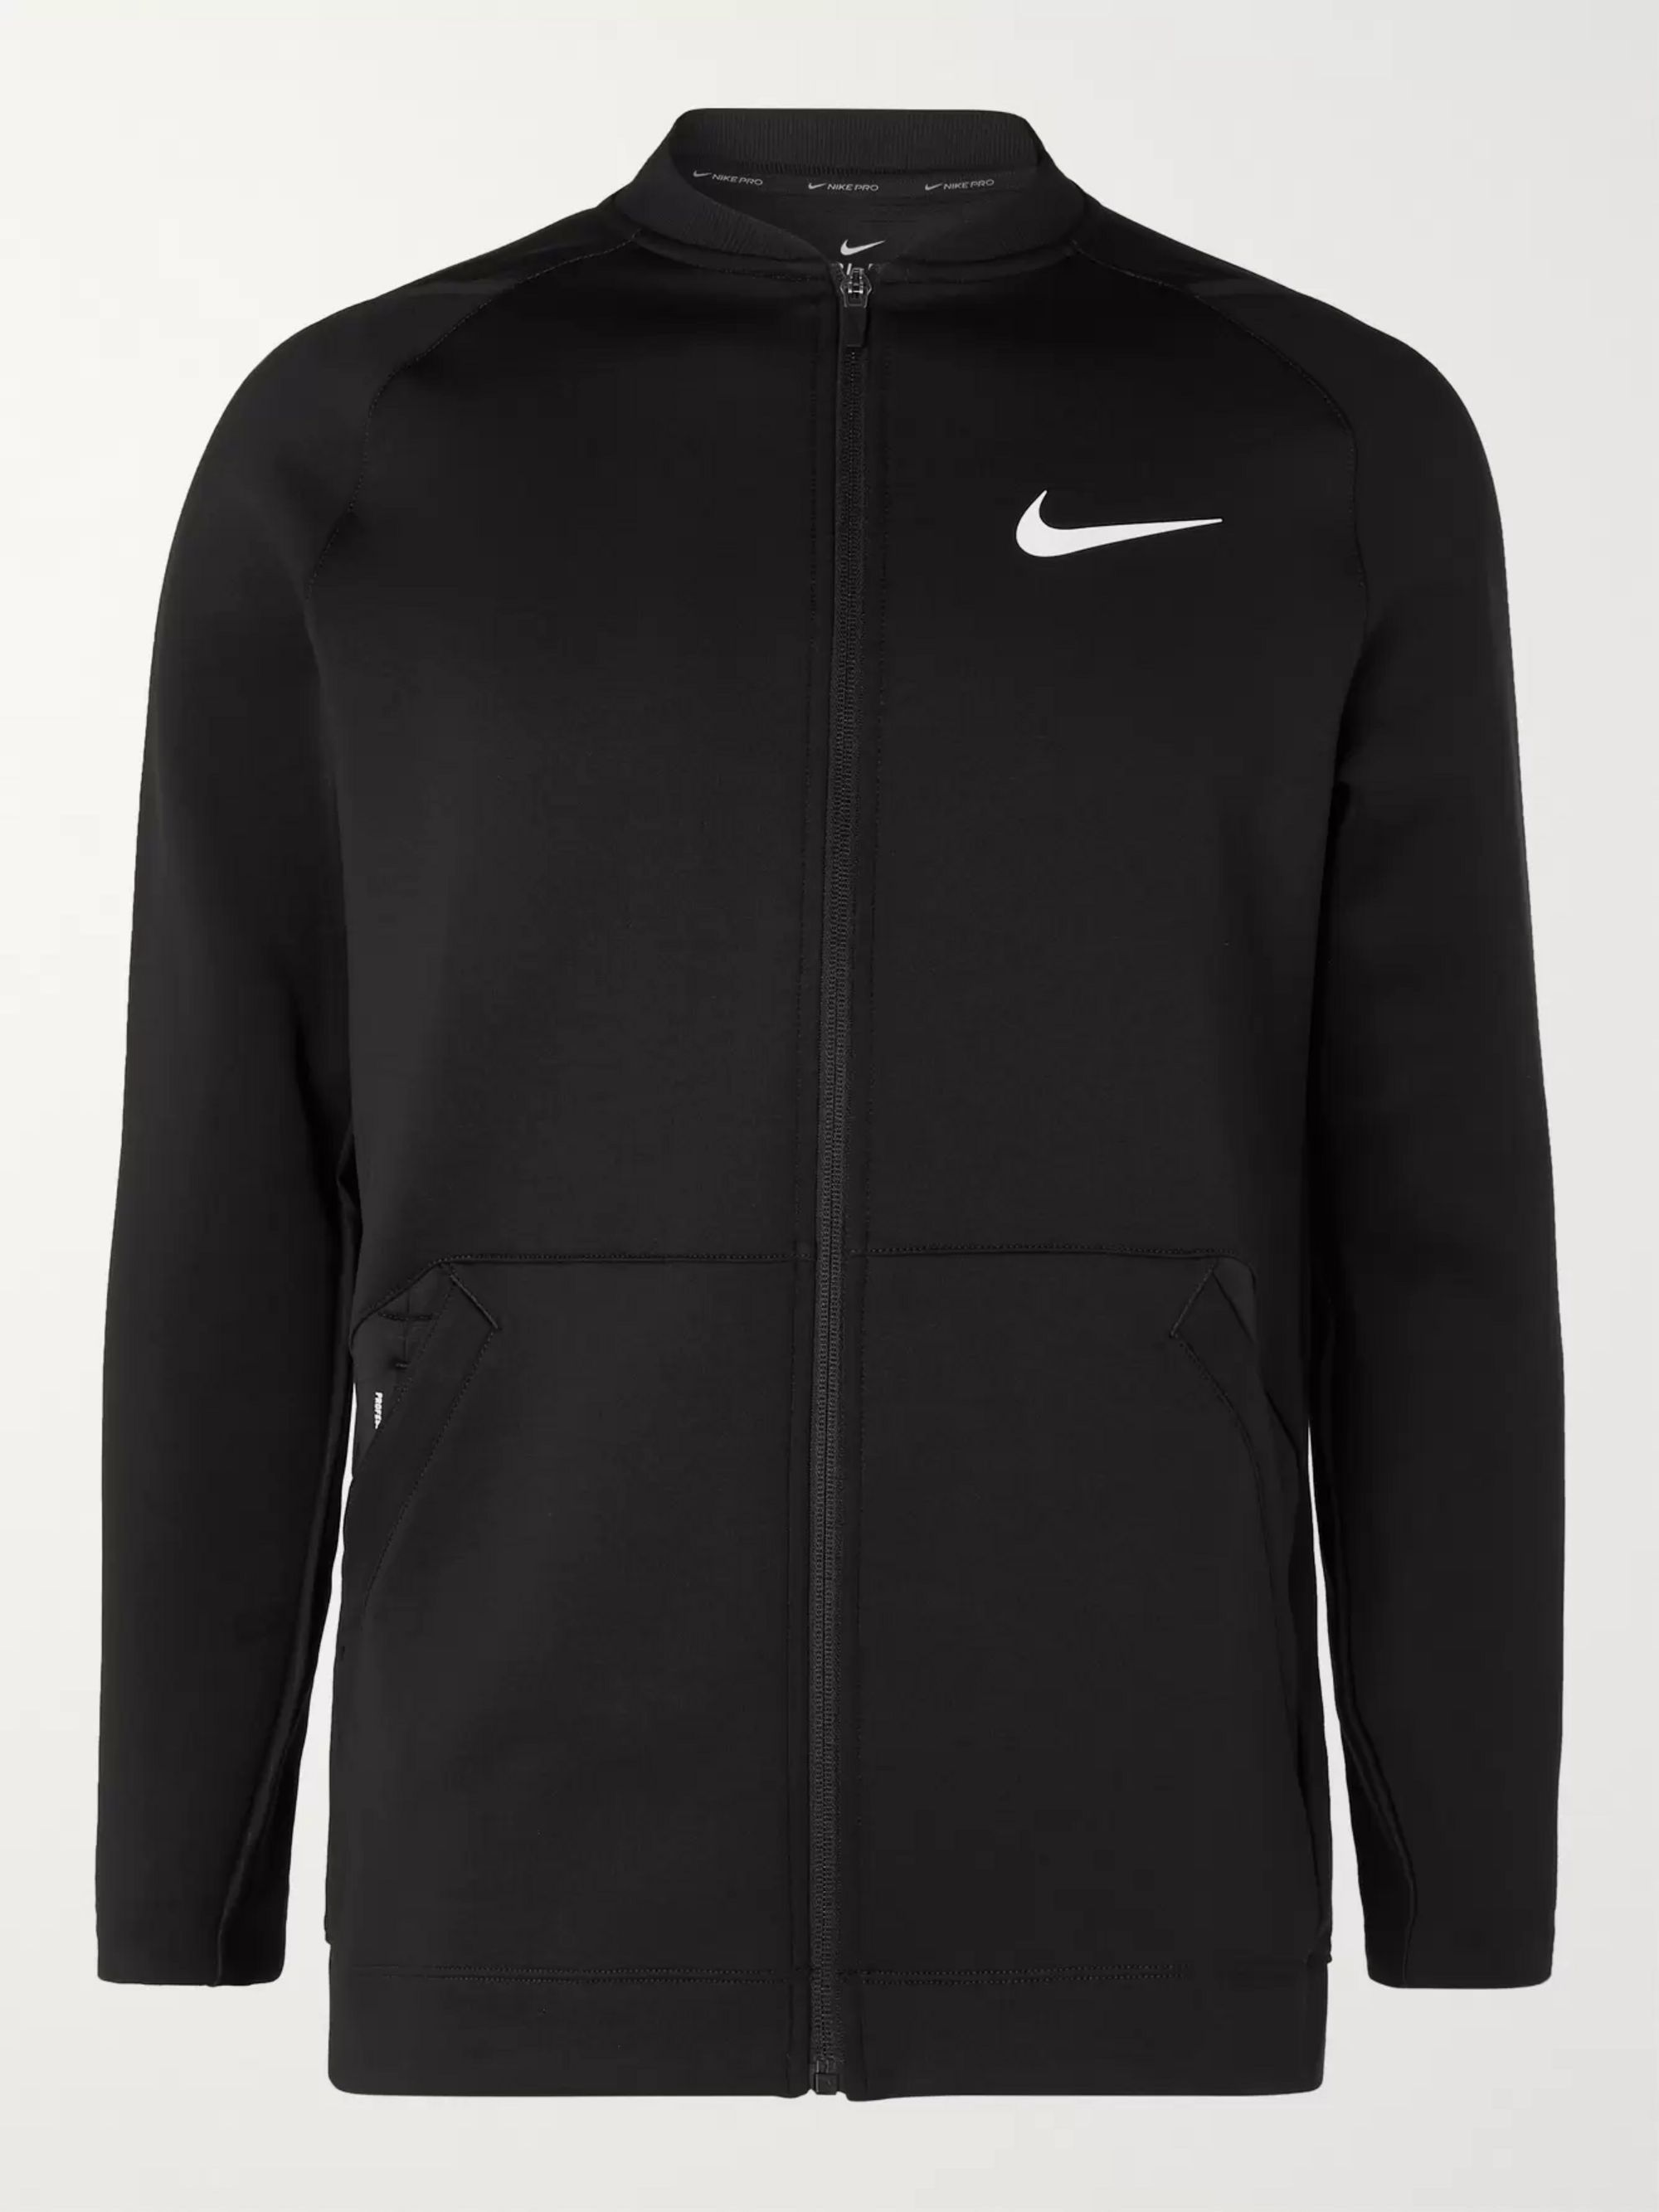 Pro Logo Print Dri Fit Zip Up Top by Nike Training